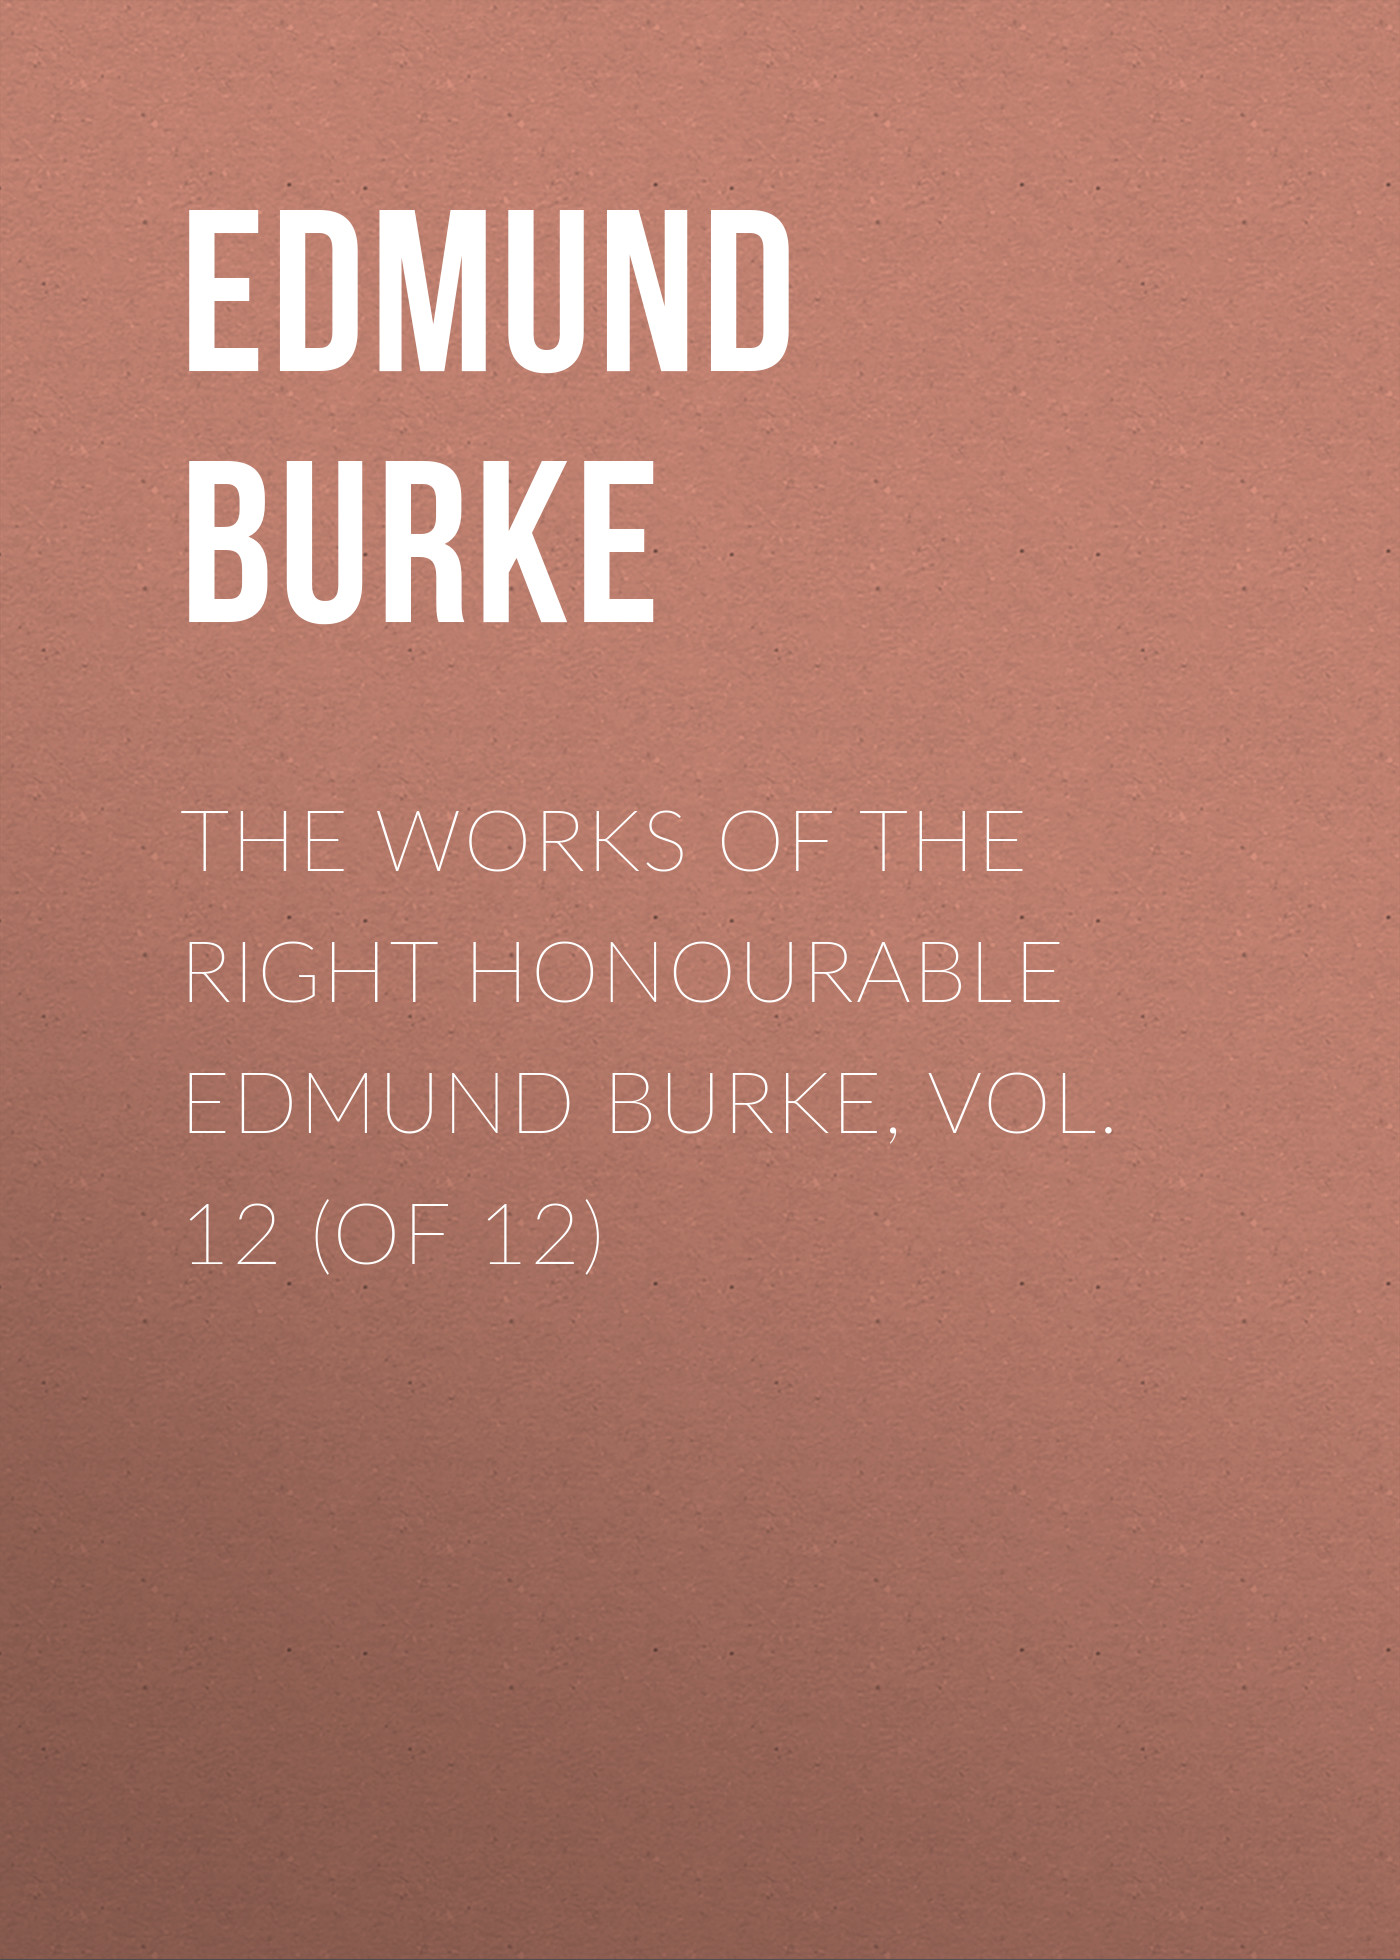 Edmund Burke The Works of the Right Honourable Edmund Burke, Vol. 12 (of 12) mark akenside the poetical works vol 1